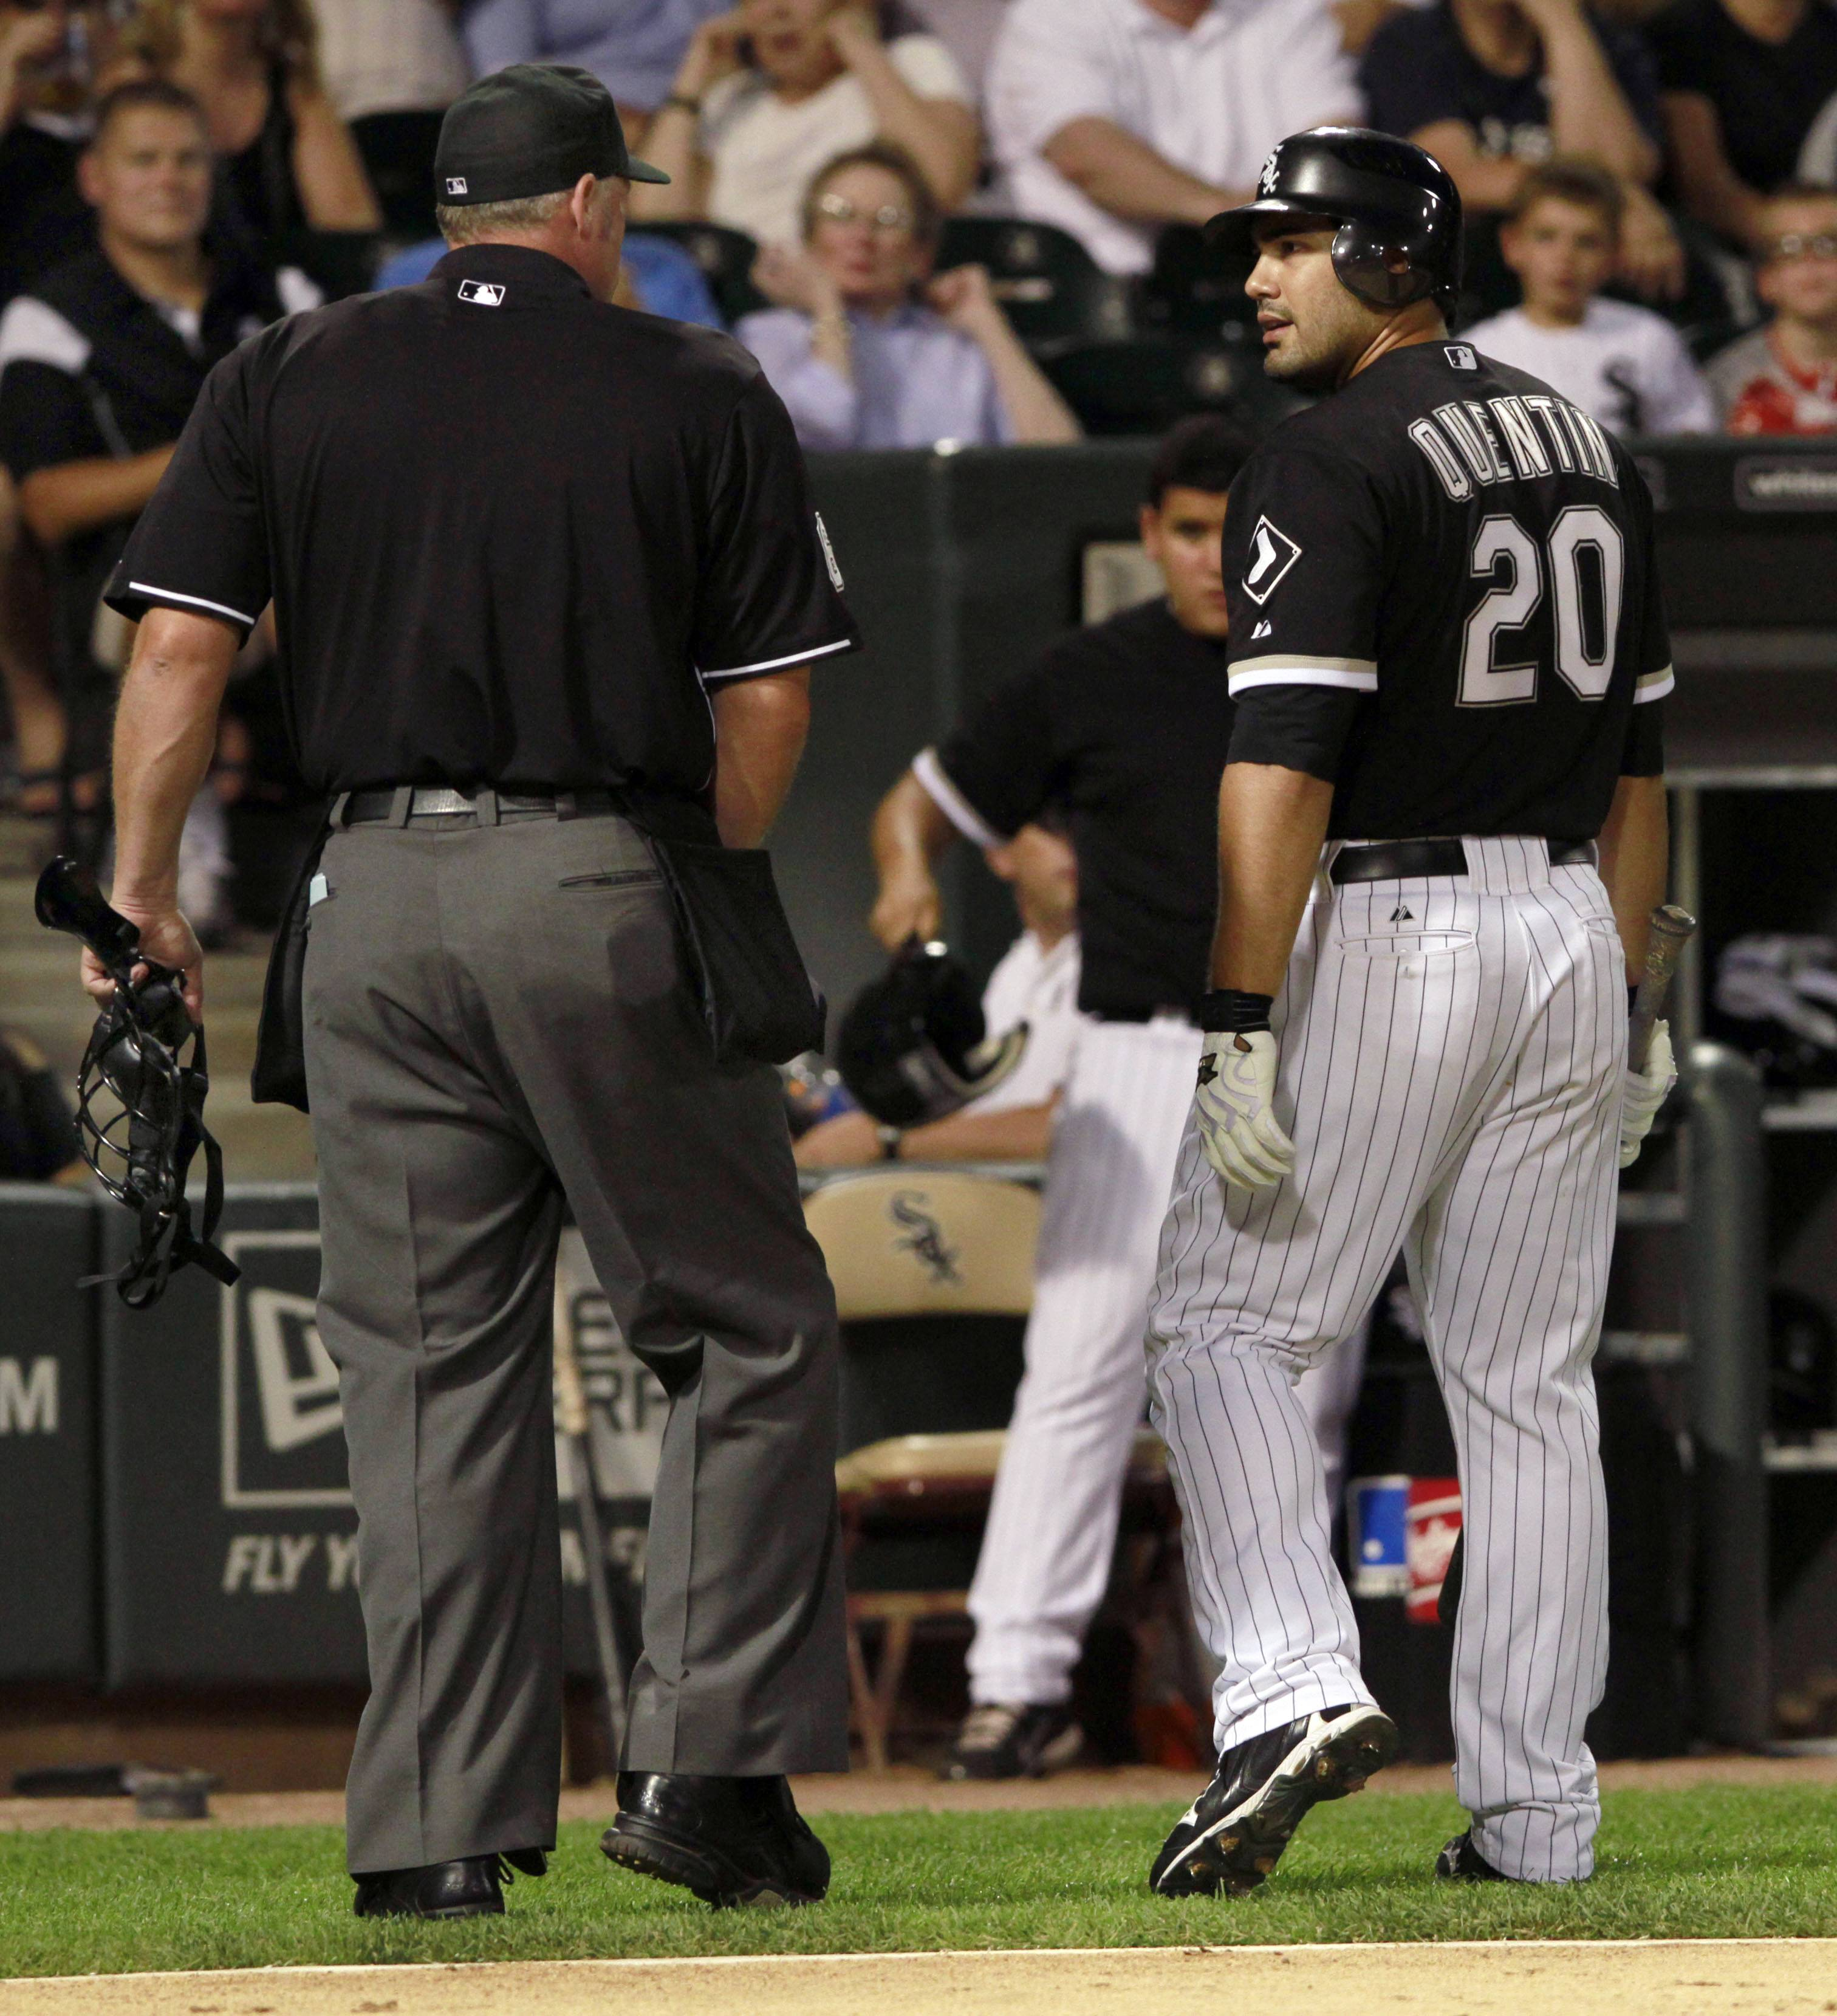 Carlos Quentin has a few words with home plate umpire Ted Barrett after striking out against the New York Yankees during the first inning.